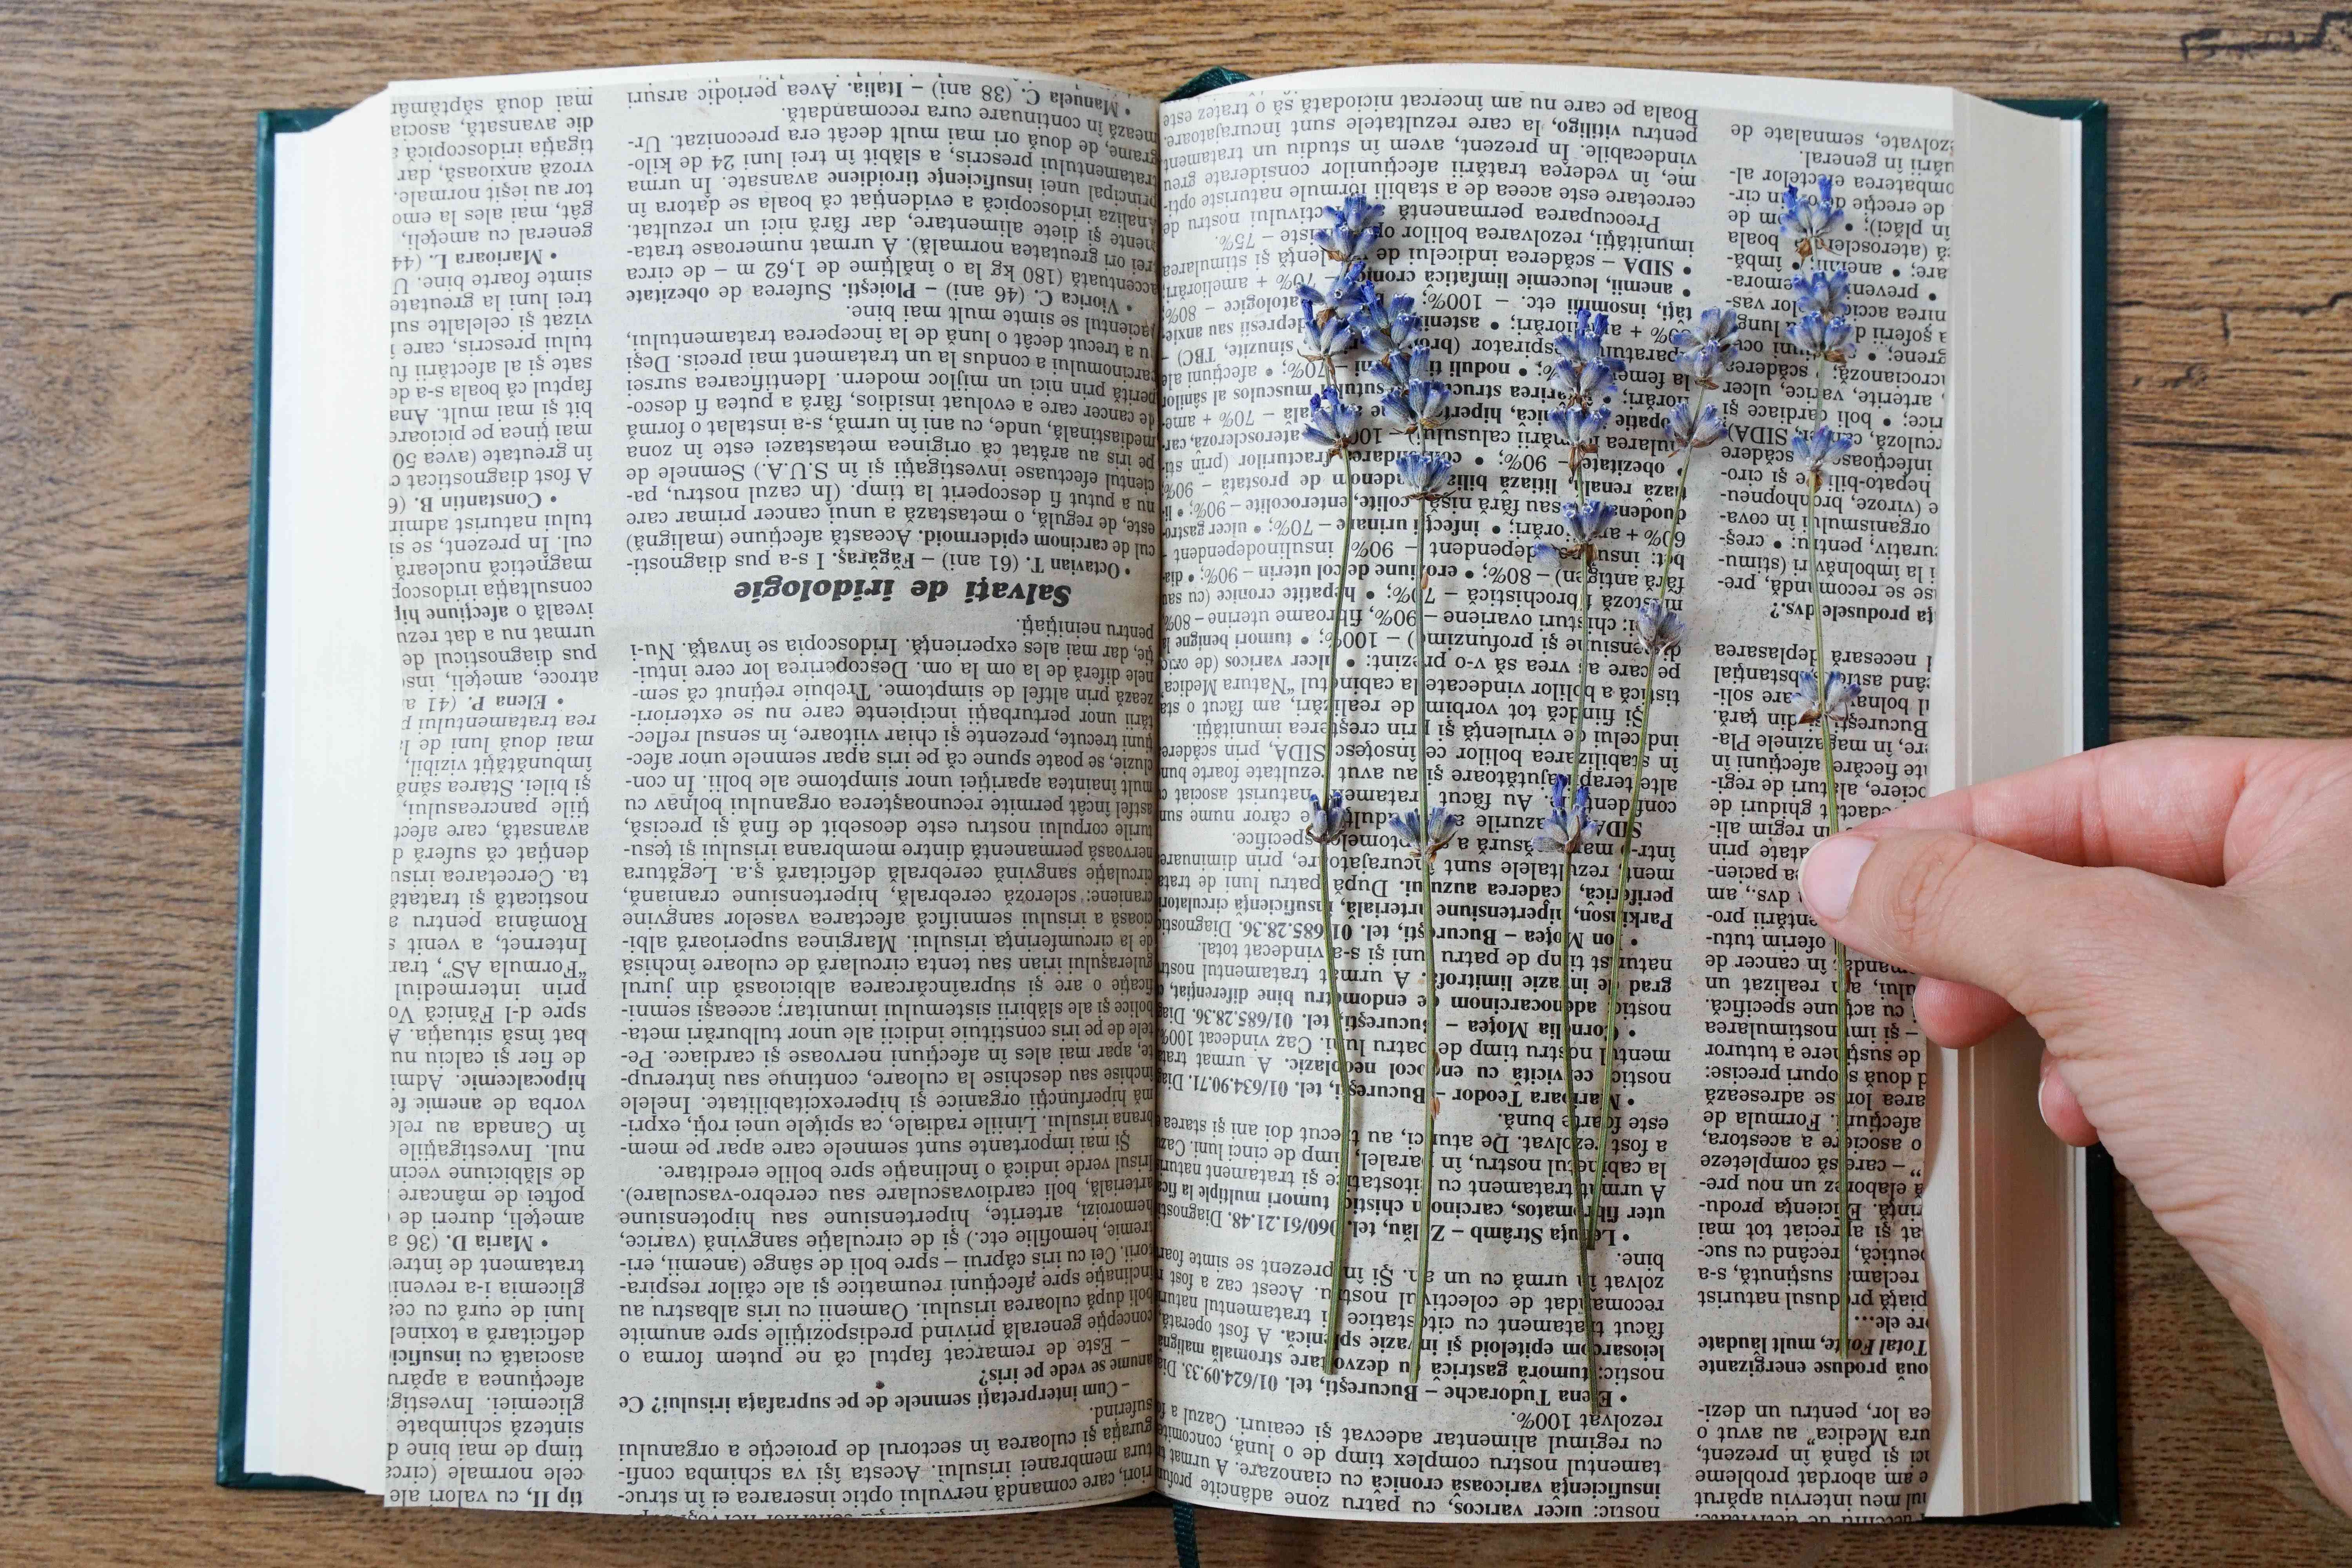 hand removes dried pressed flower from open book